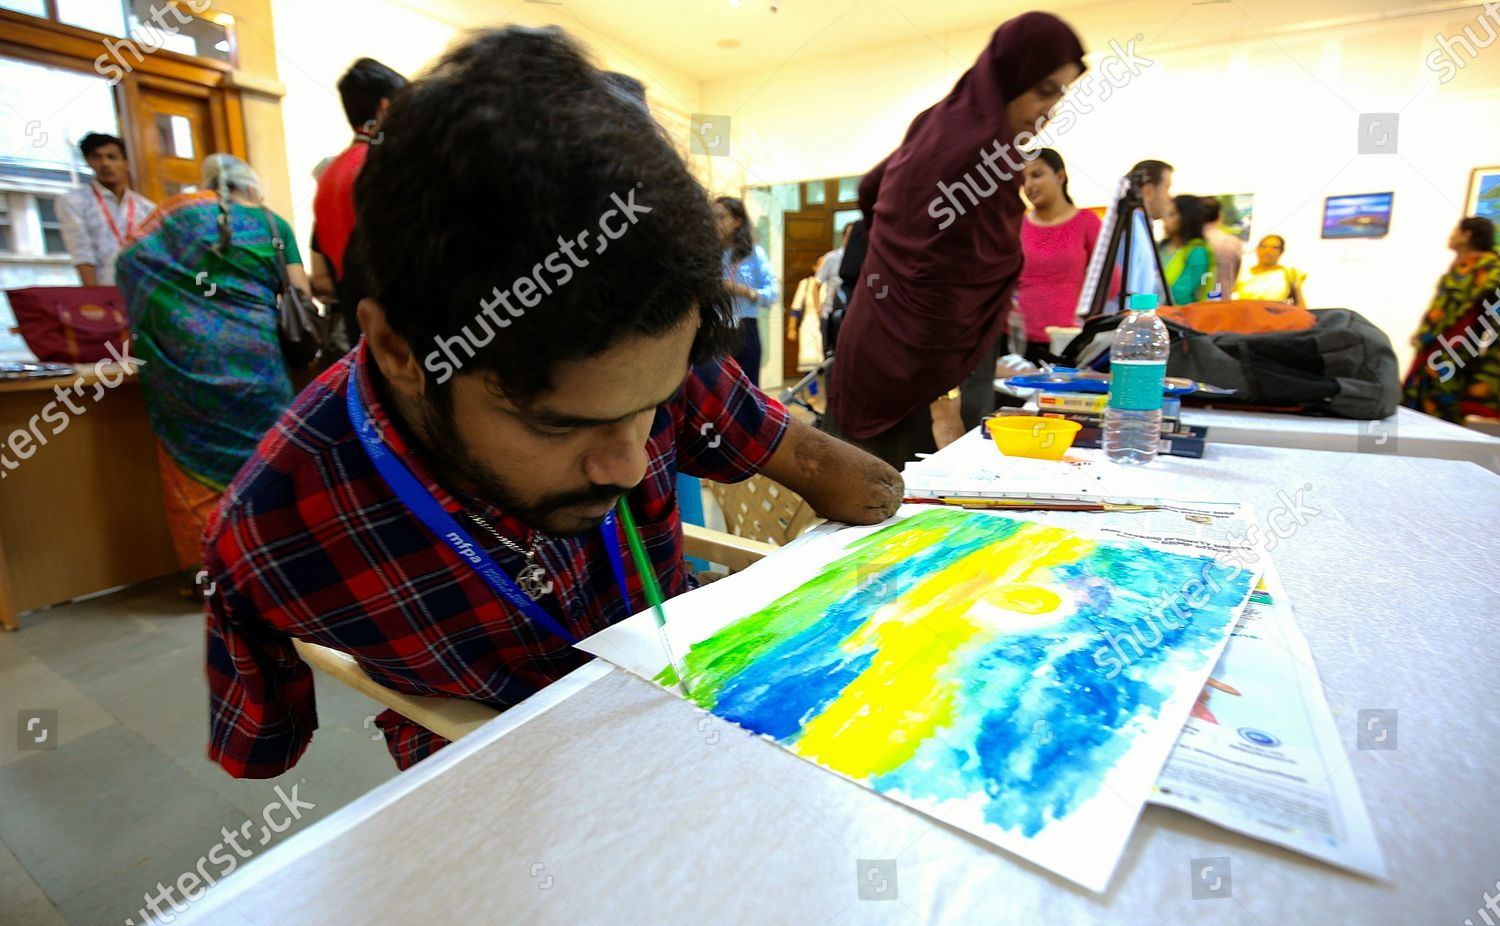 Members Mouth Foot Painting Artists Mfpa International Editorial Stock Photo Stock Image Shutterstock